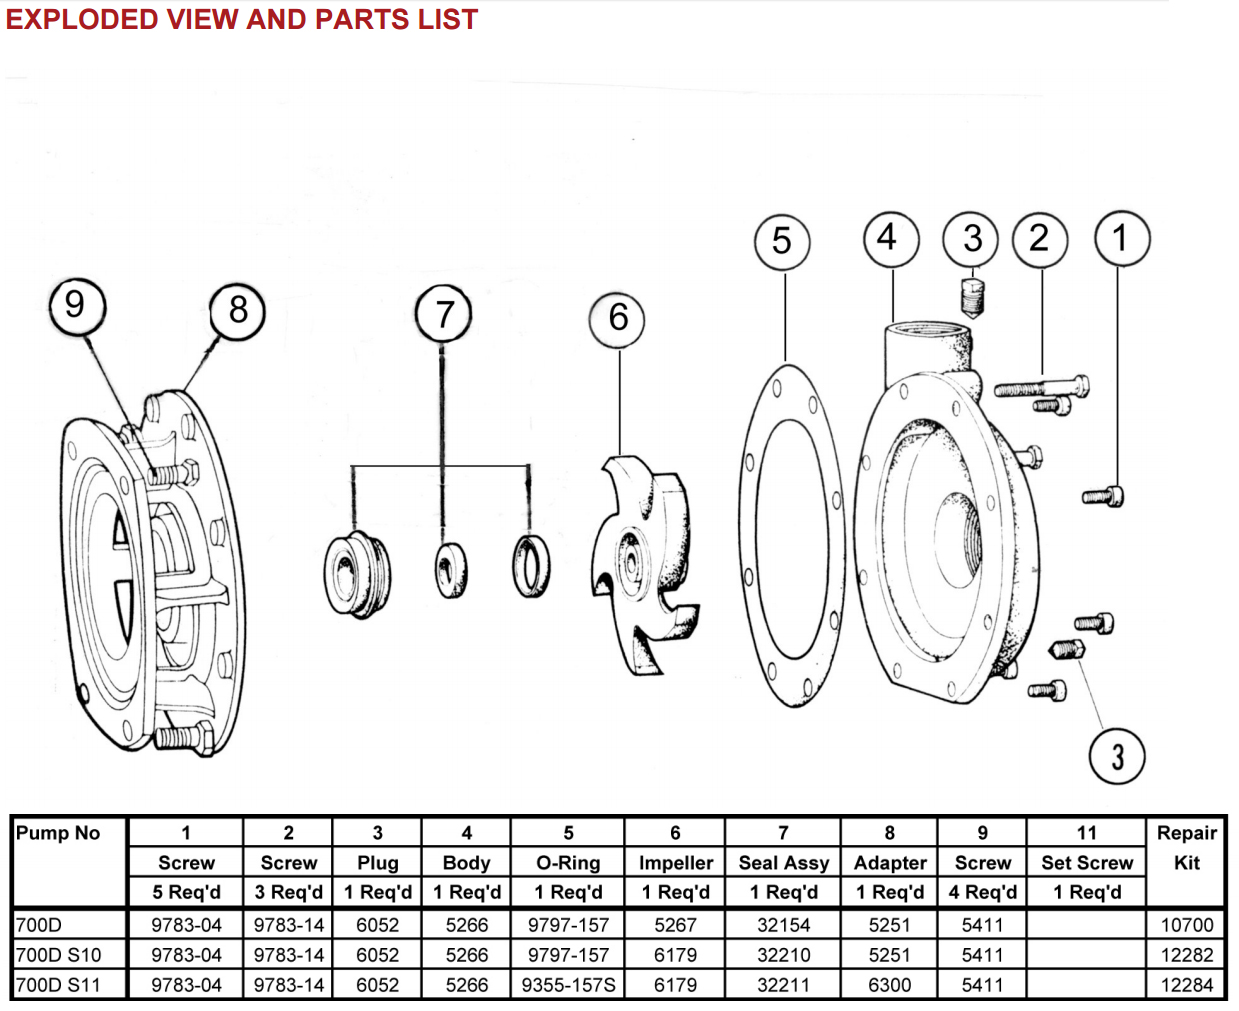 Oberdorfer 700D Exploded View and Parts List